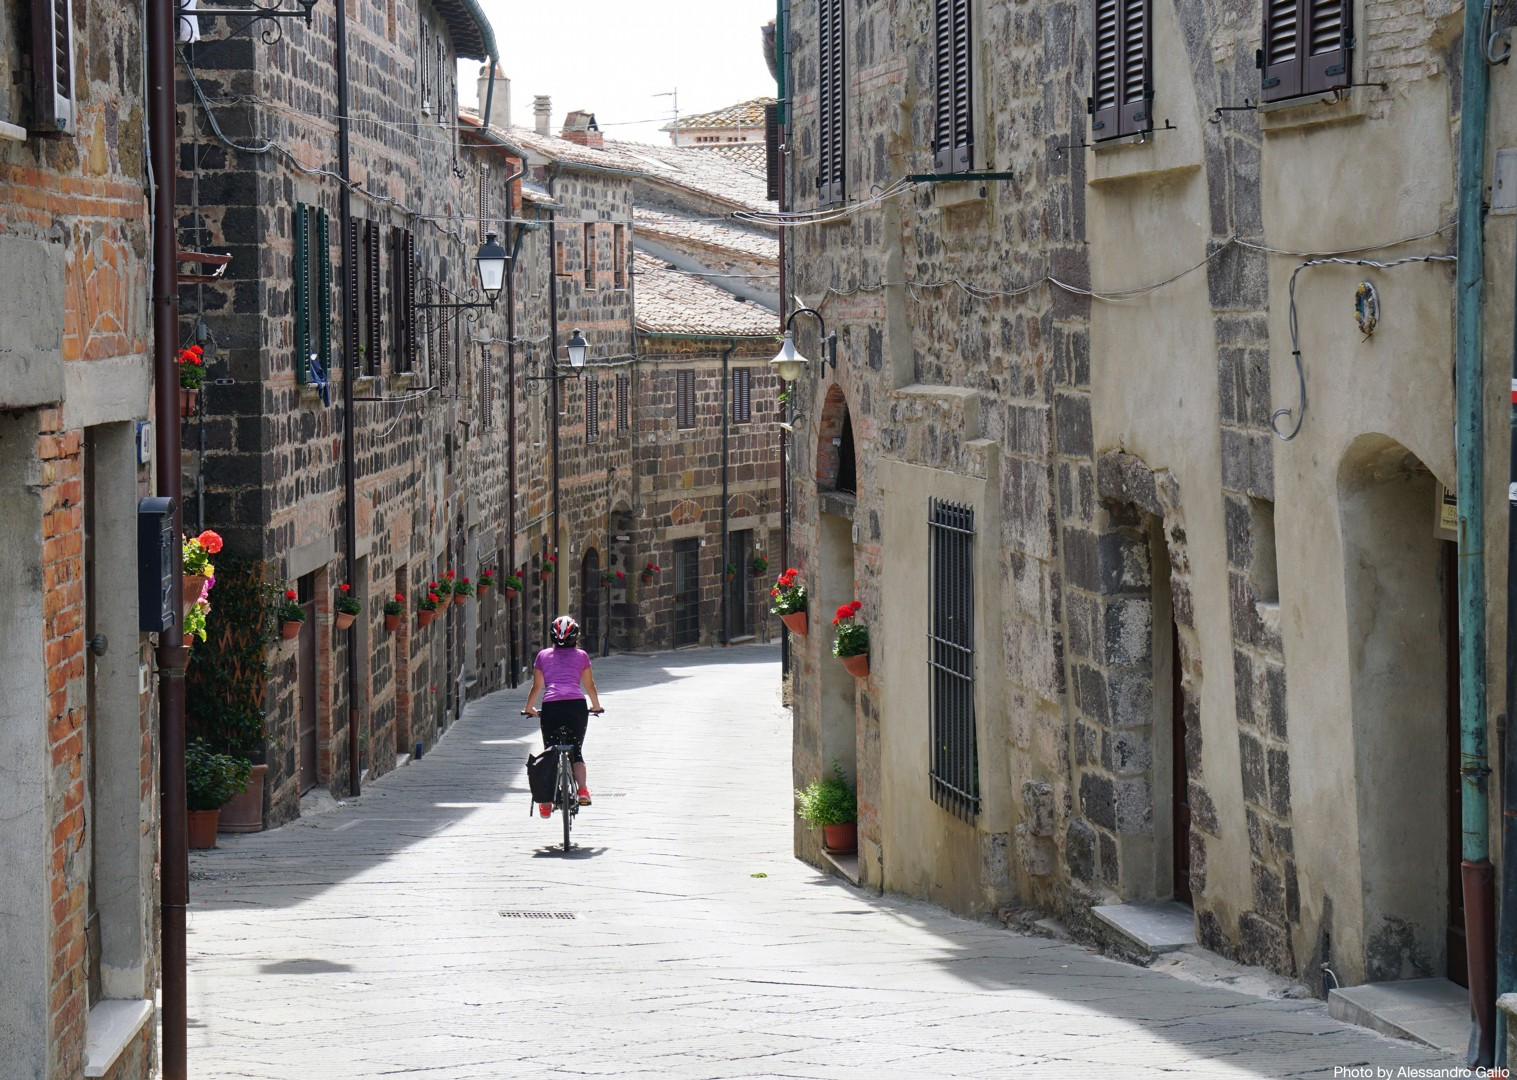 valle-umbra-italy-spirit-of-umbria-self-guided-leisure-cycling-holiday.JPG - NEW! Italy - Spirit of Umbria - Family Cycling